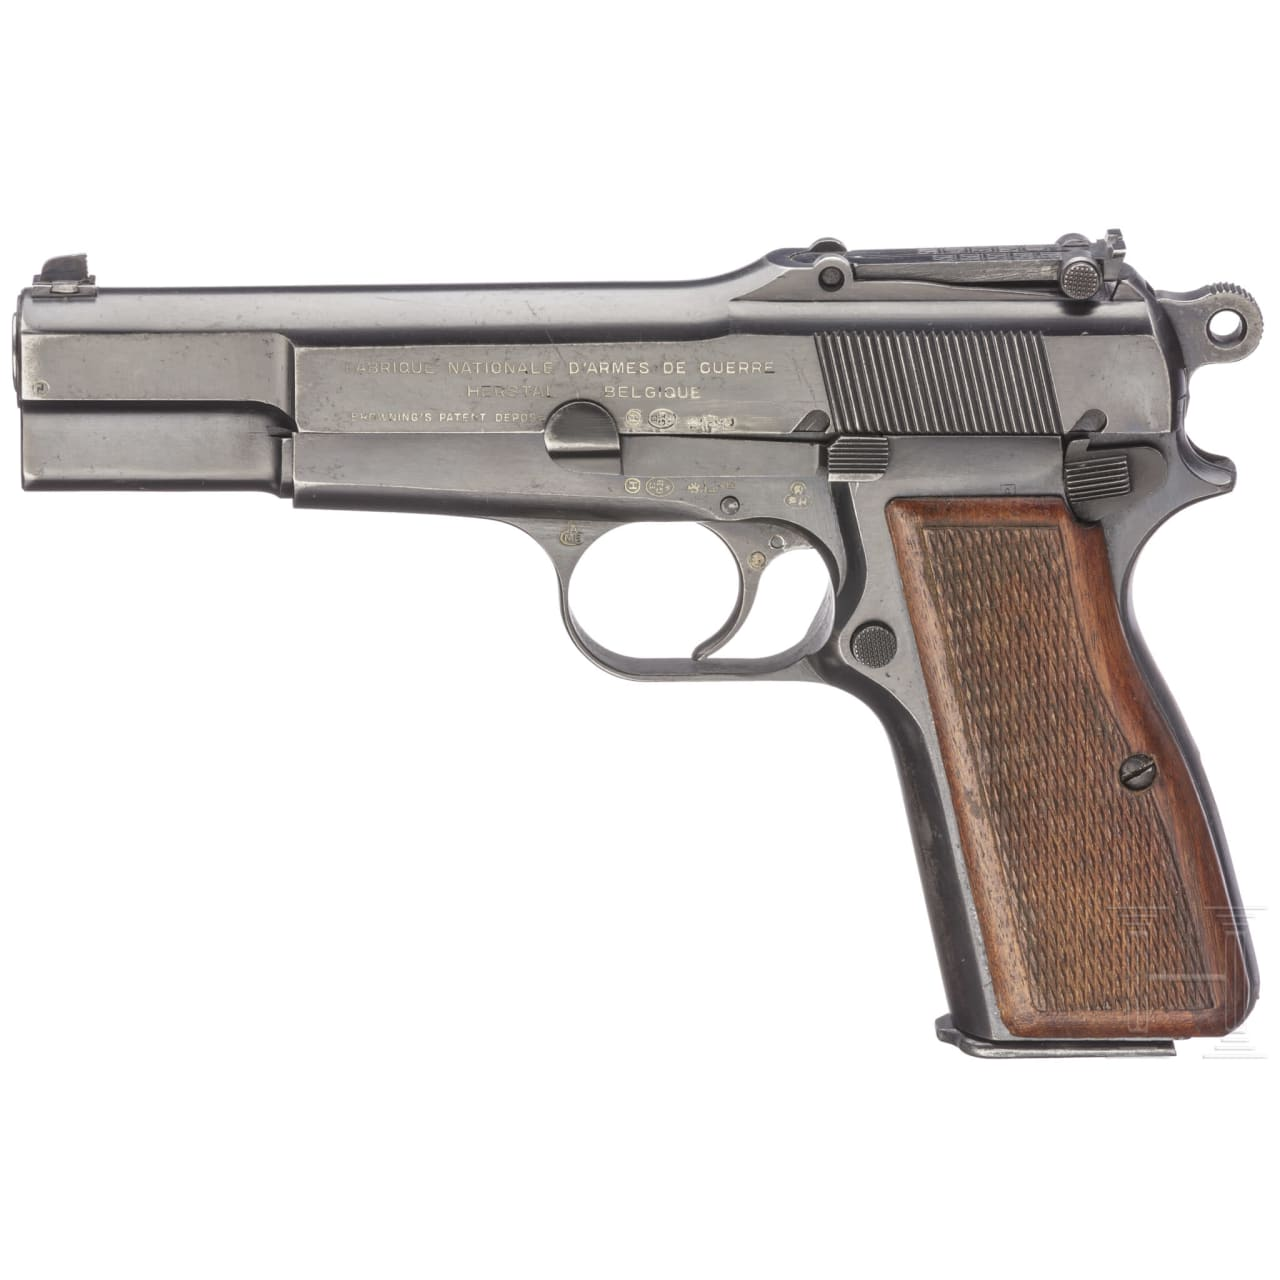 An FN GP (Grand Puissance) HP Mod. 35 with stock and reservist's sash